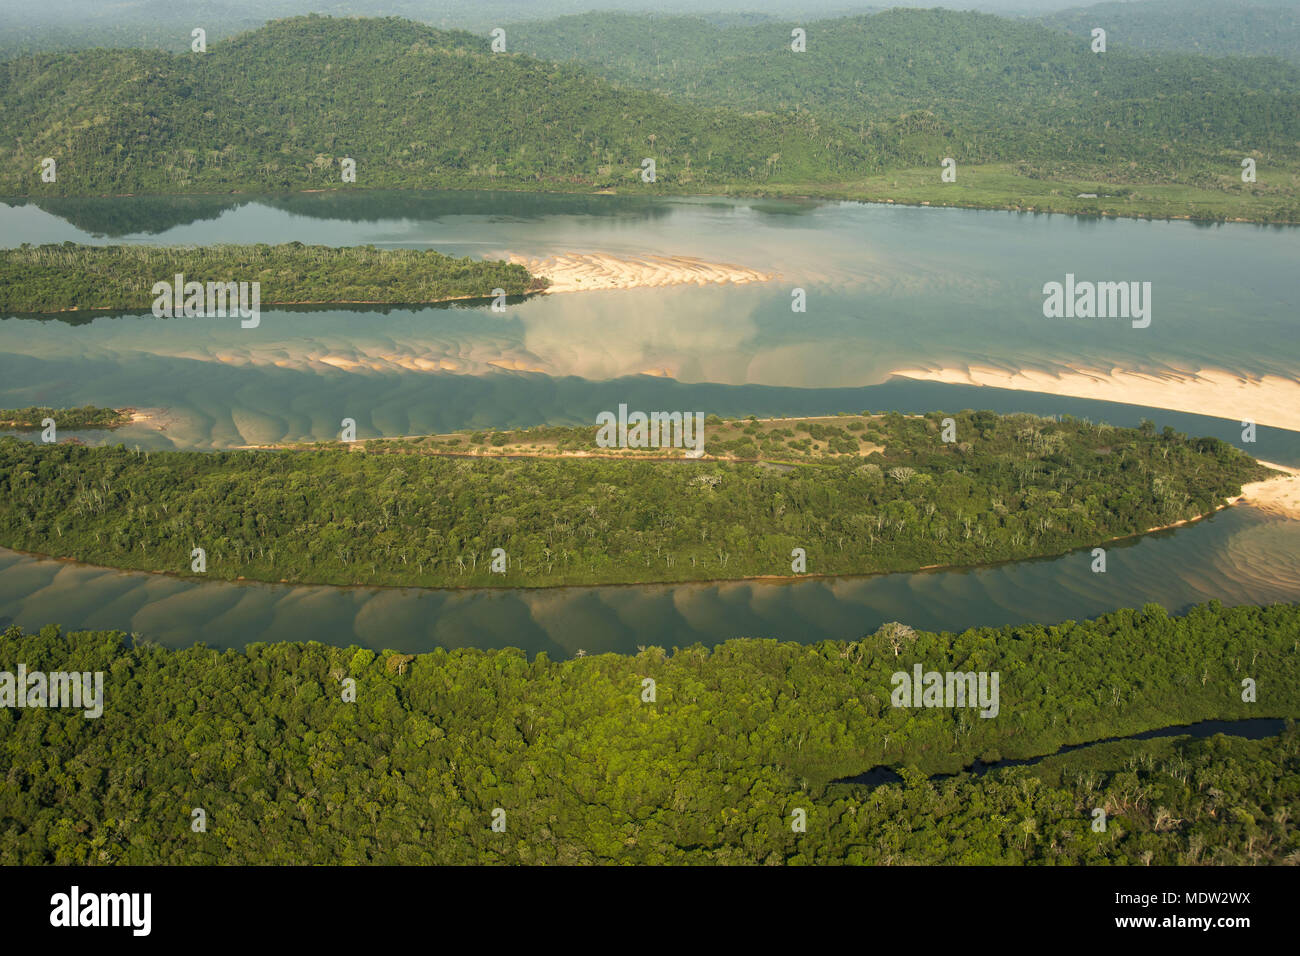 Aerial view of the Xingu River in the period of ebb - Stock Image